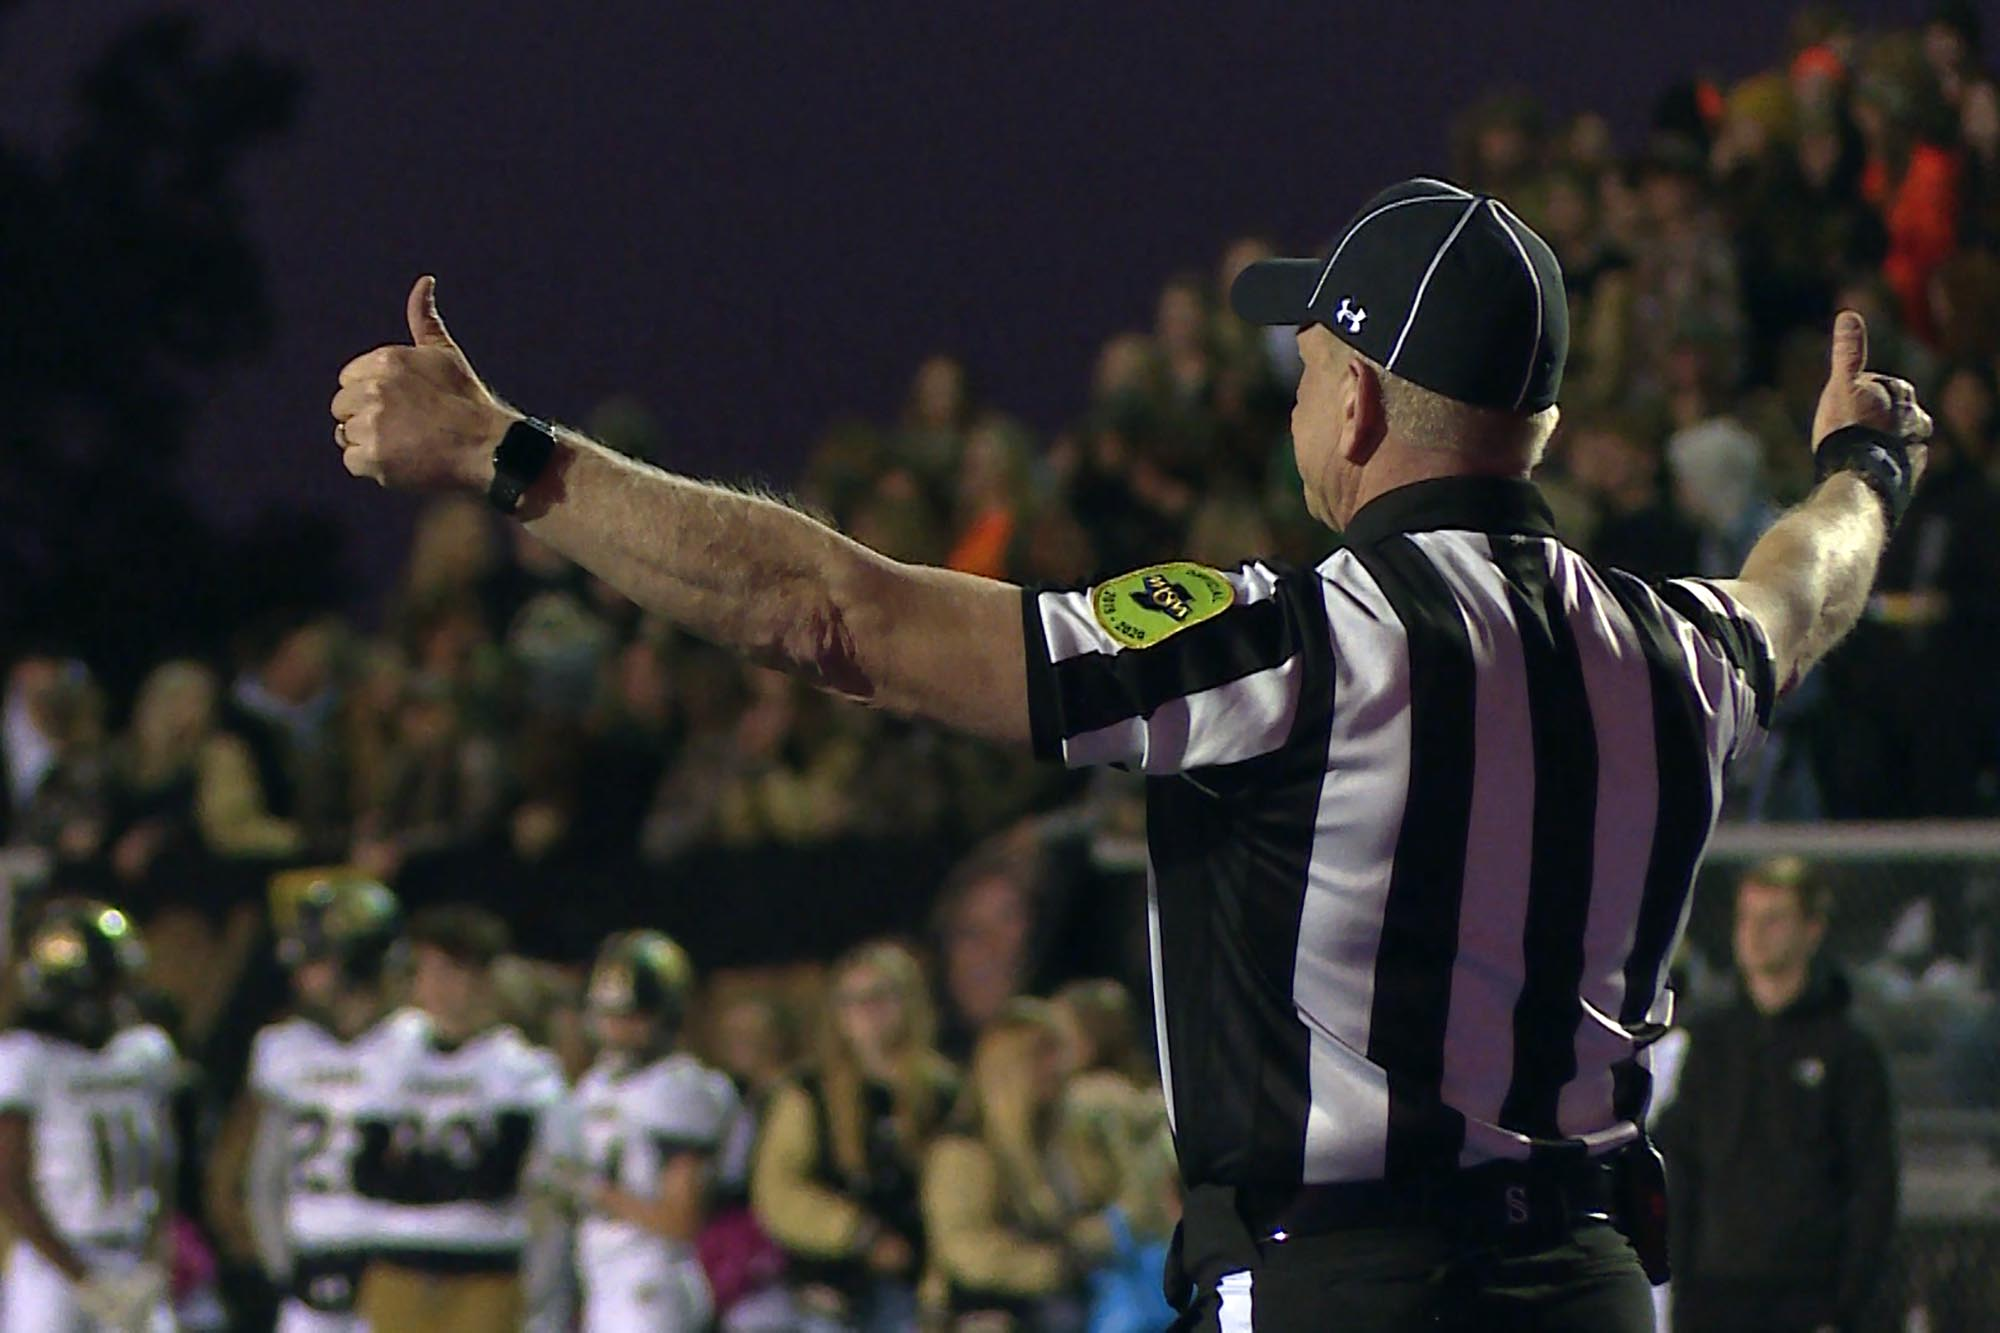 A shot of a high school football referee/official from the back.